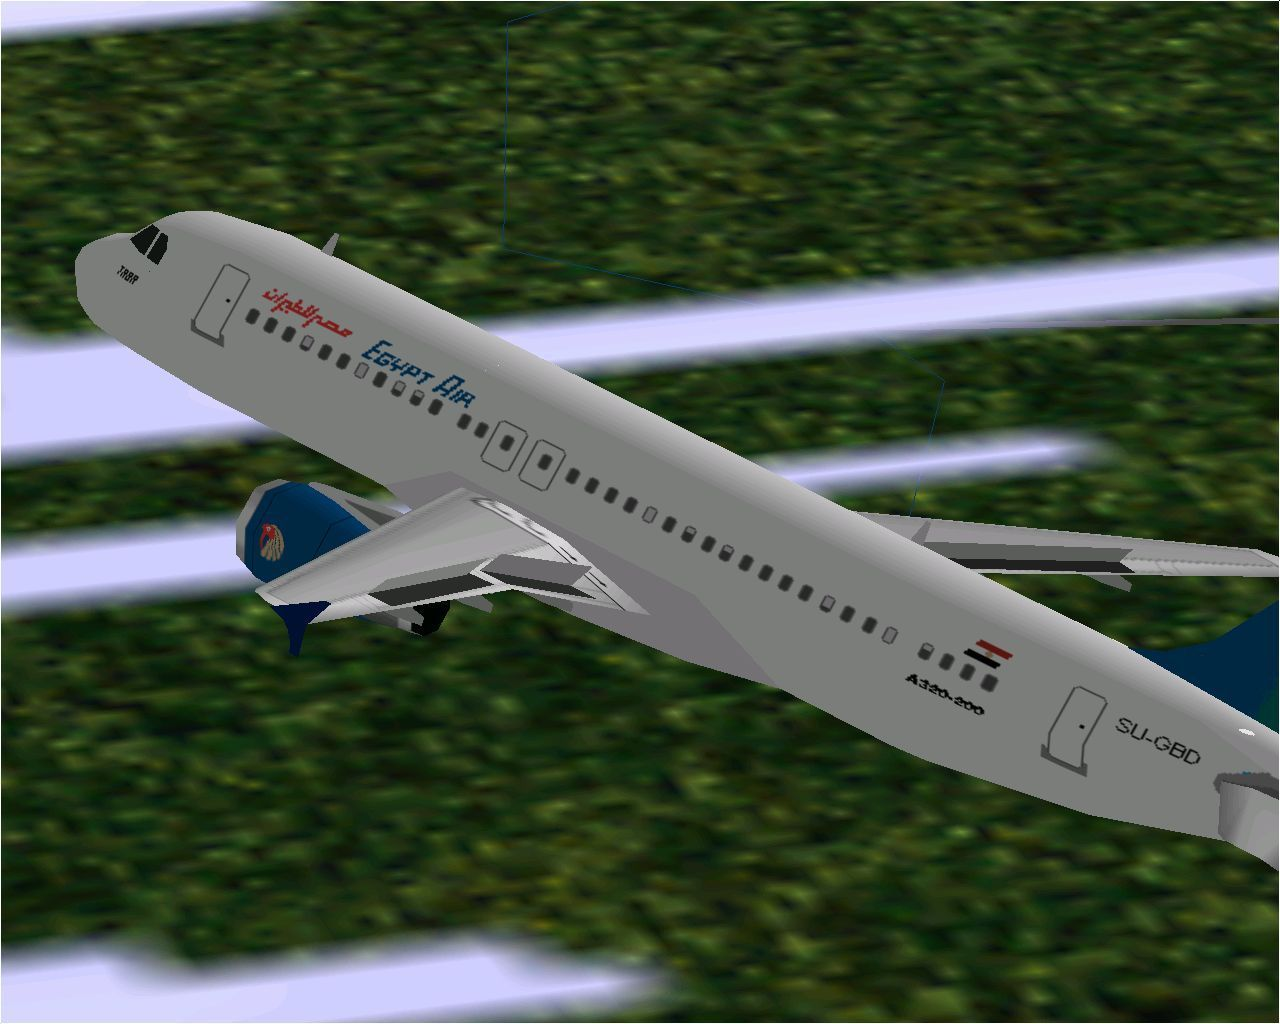 Airbus 2000: Special Edition Windows The Airbus A320-231 in Microsoft Flight Simulator 98 flying in Egyptair livery with flaps deployed